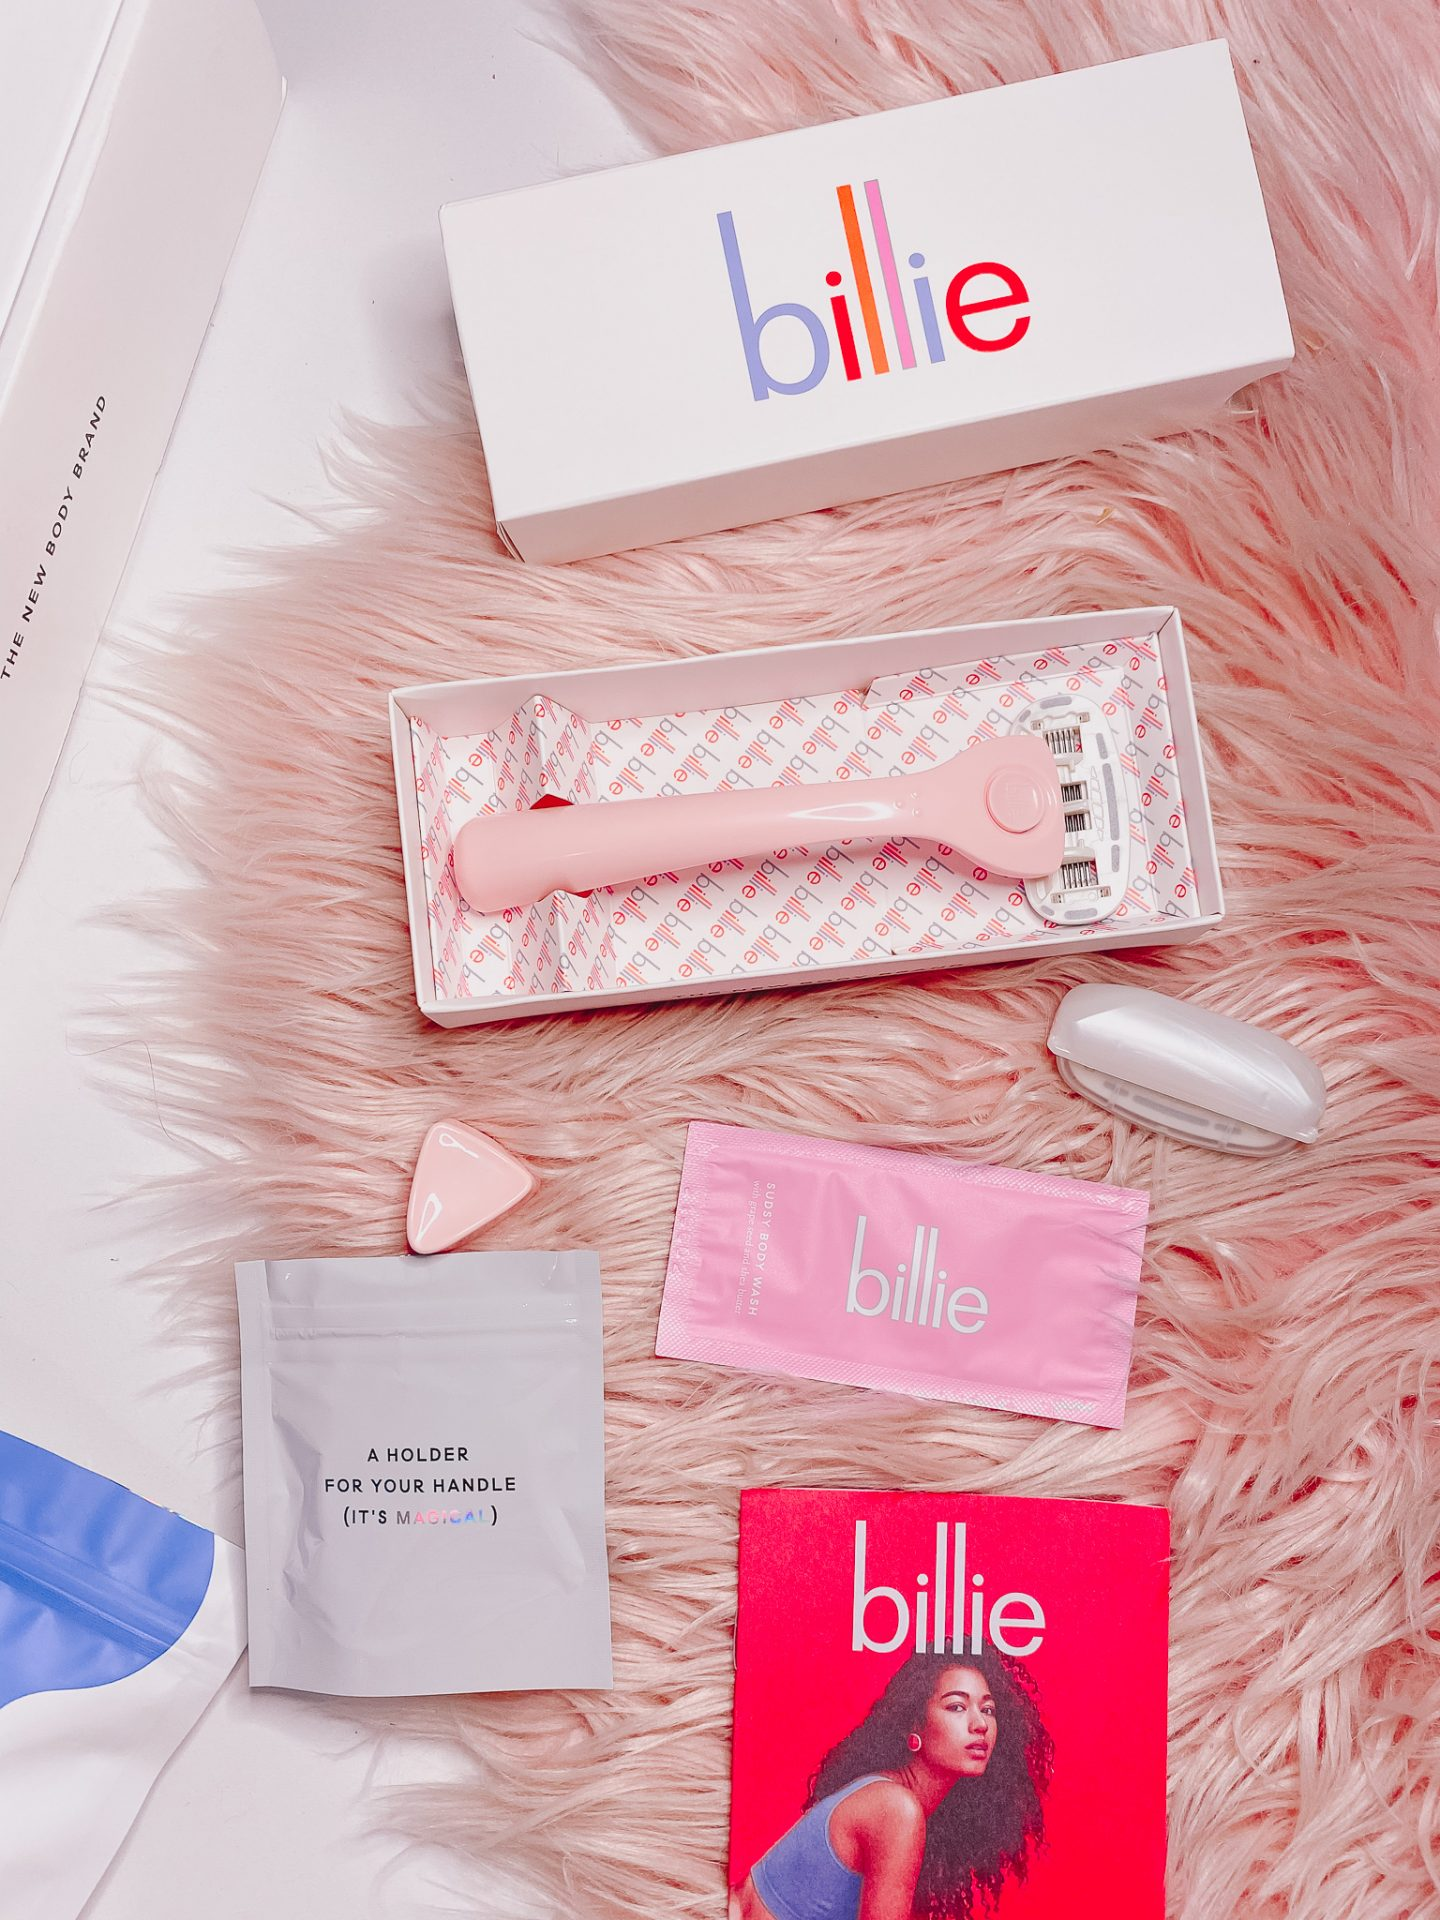 My Honest Unsponsored Review of the Billie Razor